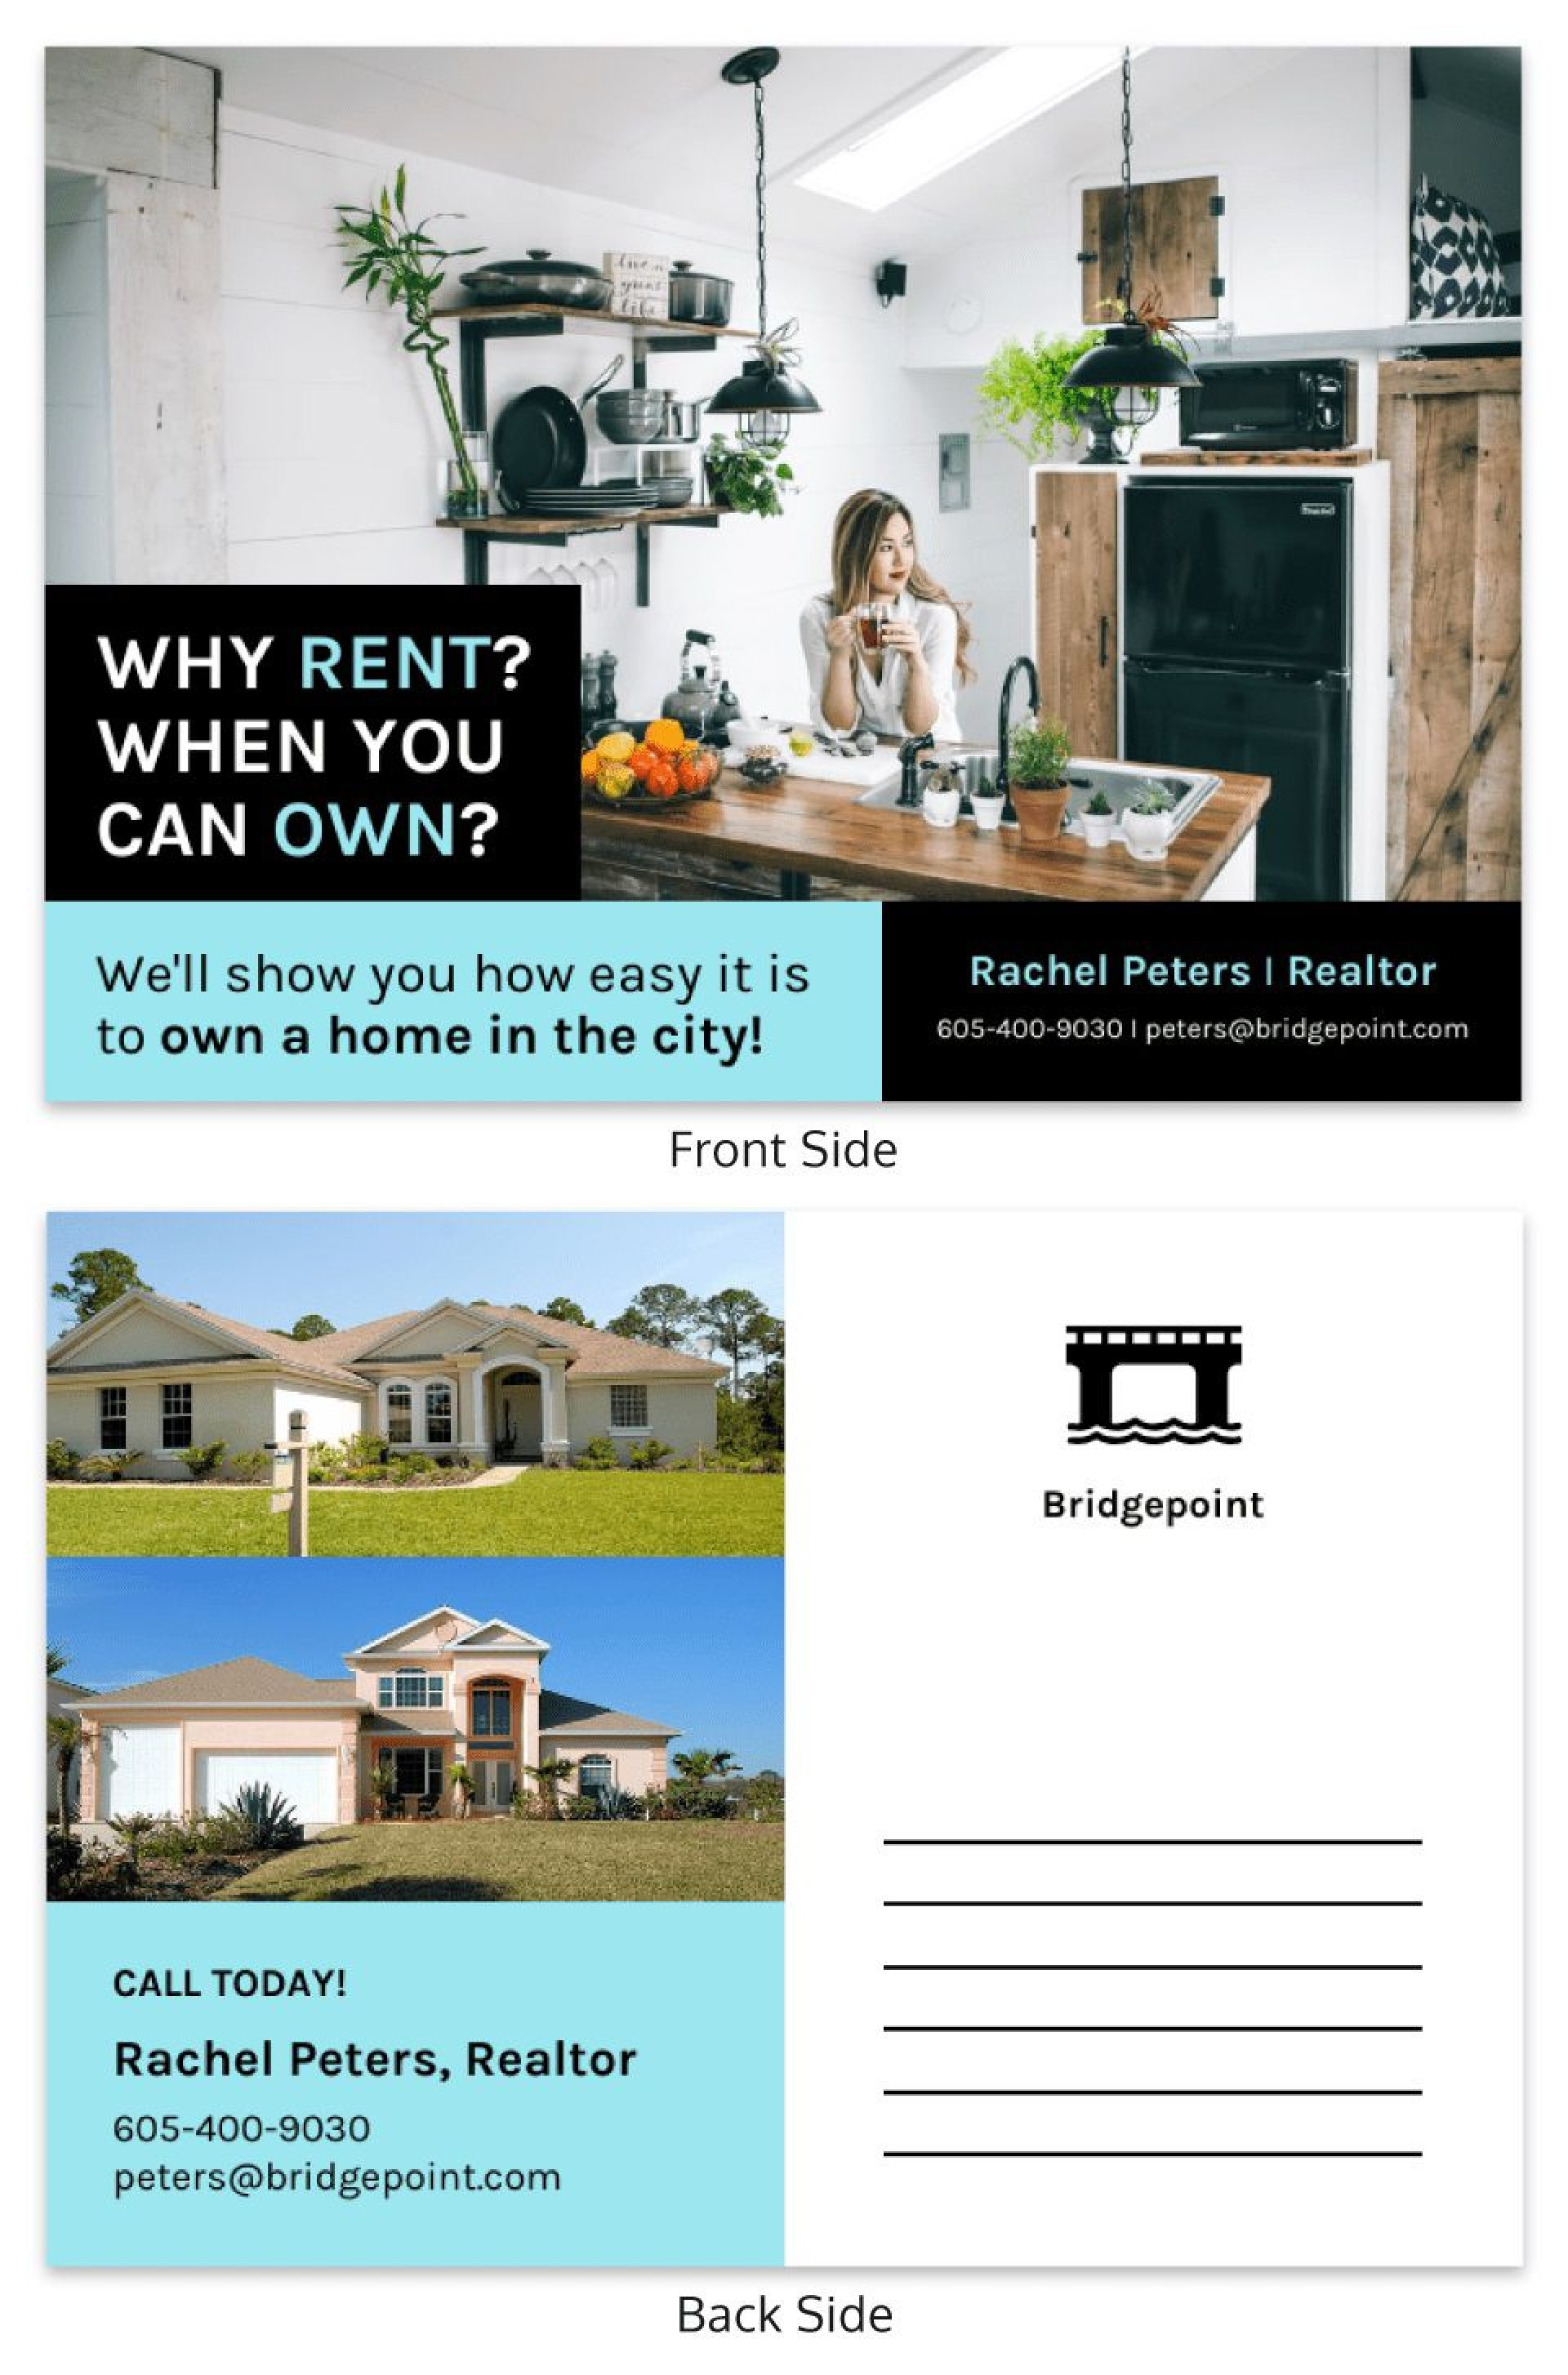 001 Fascinating Real Estate Postcard Template Design  Agent Free Microsoft Word Investor1920